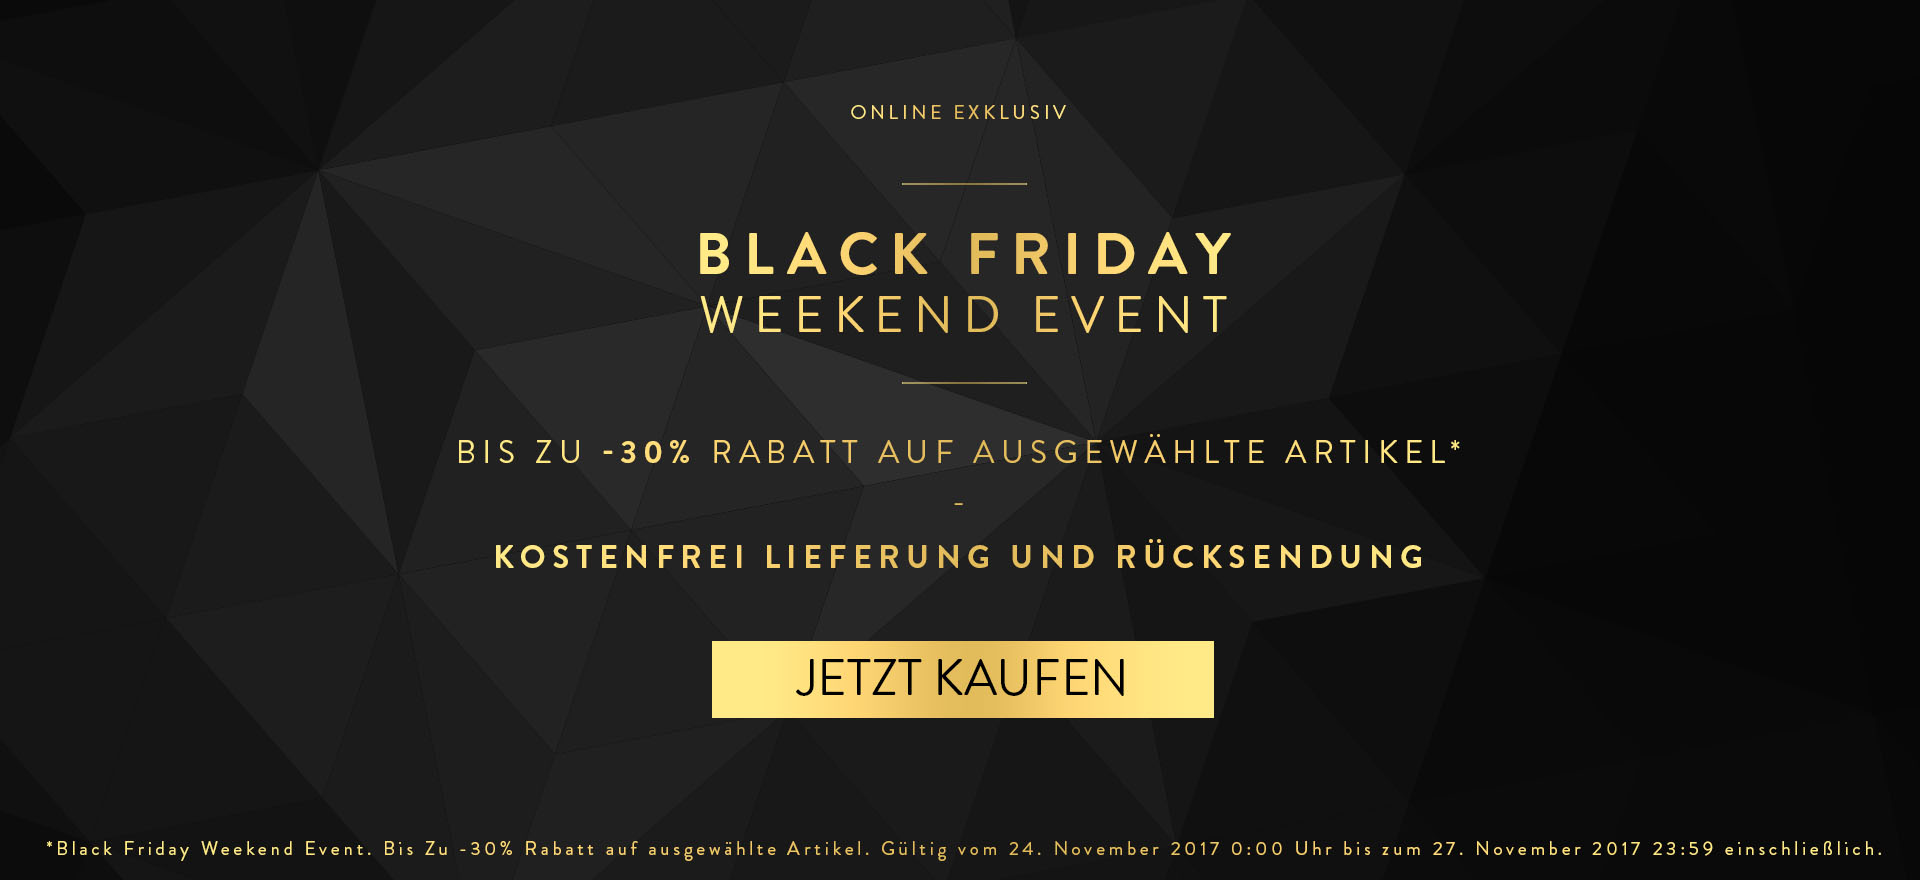 Black Friday Weekend Event